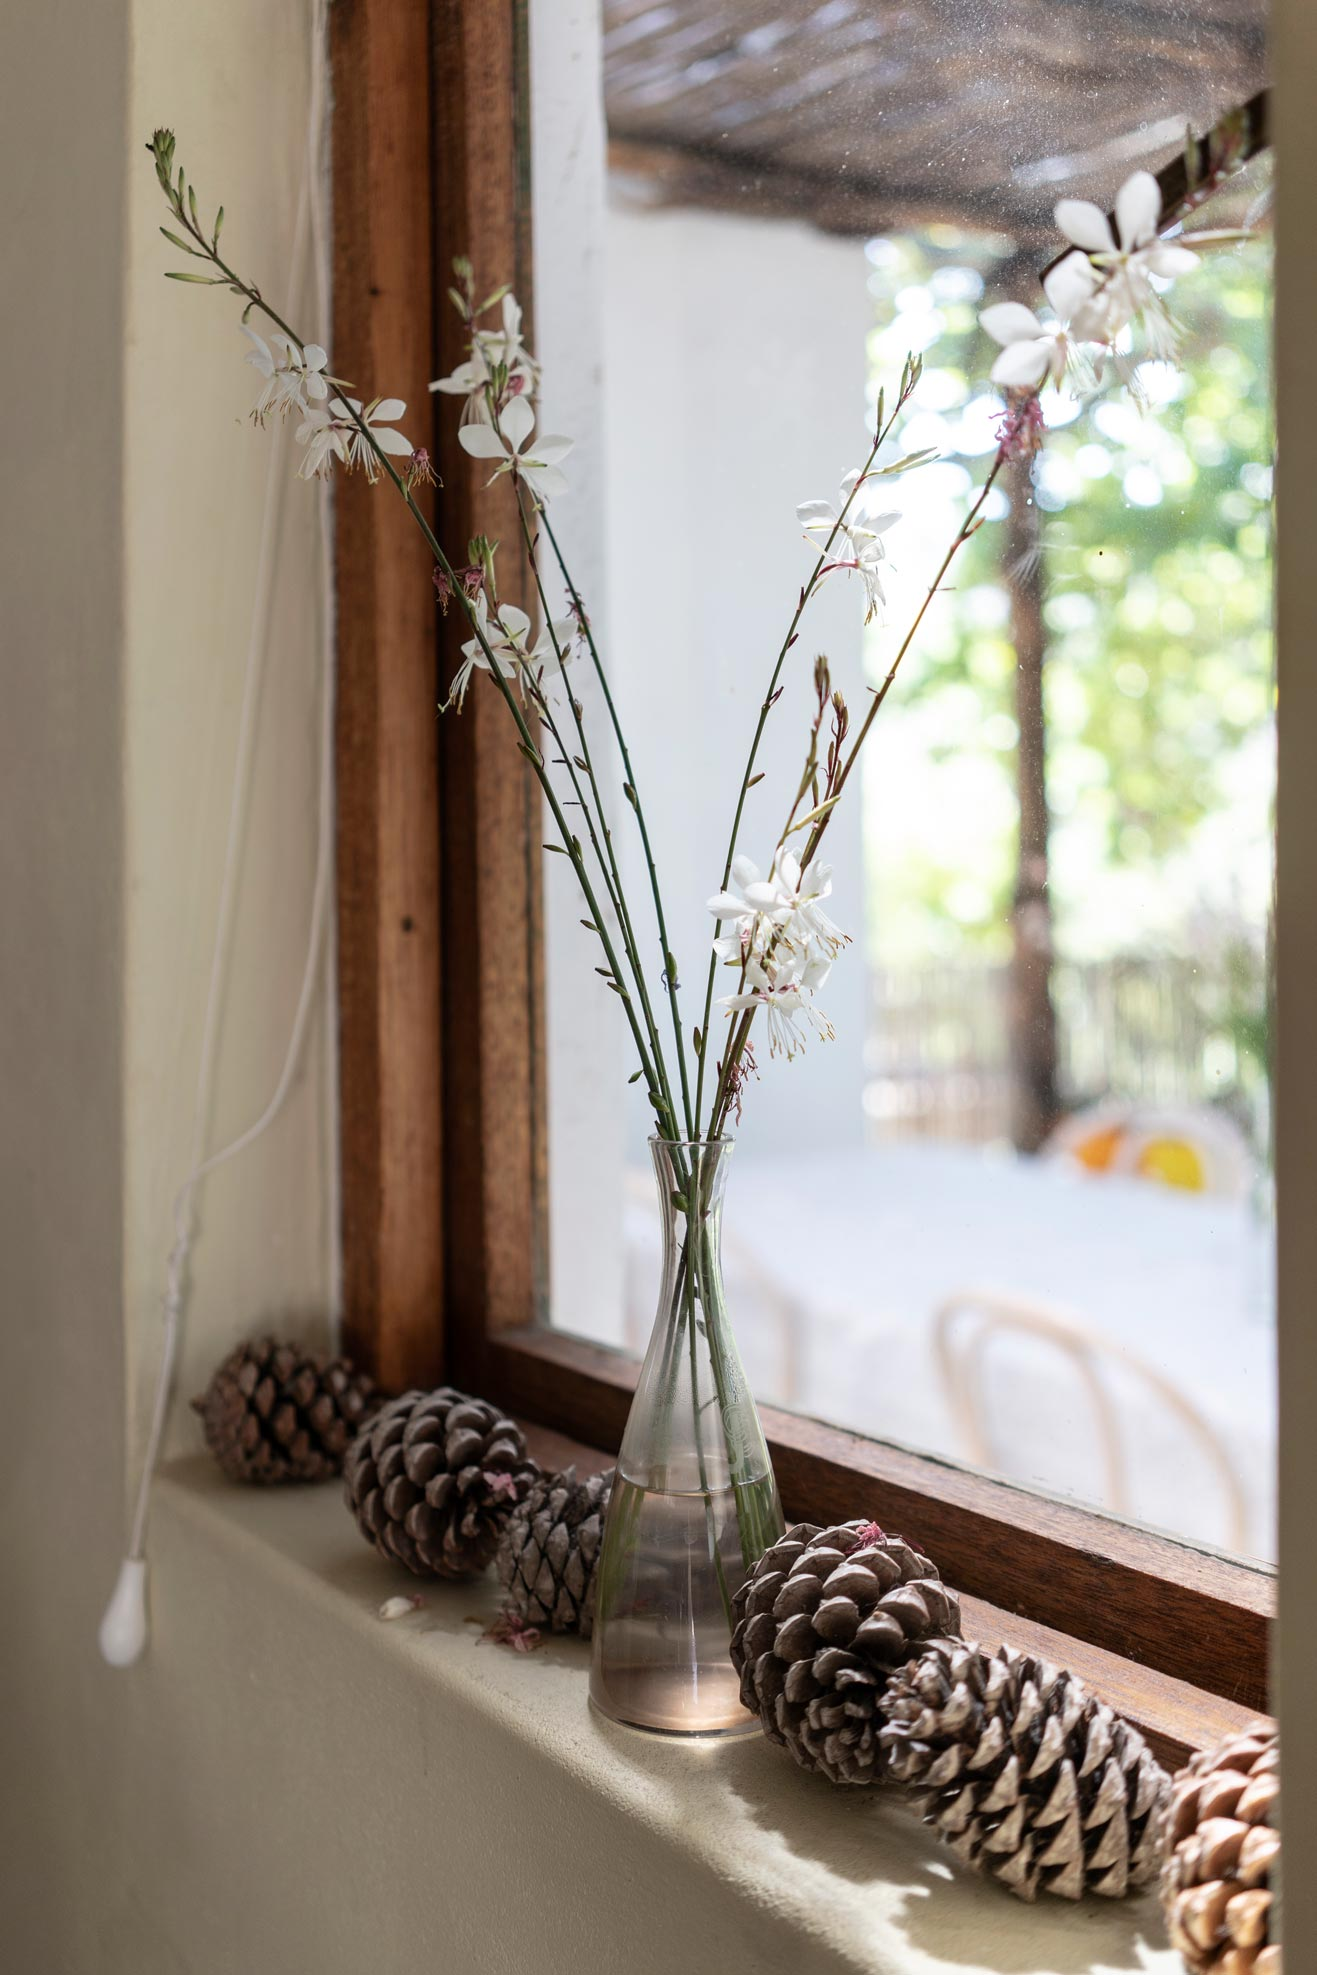 Window decorated with flowers and pine cones